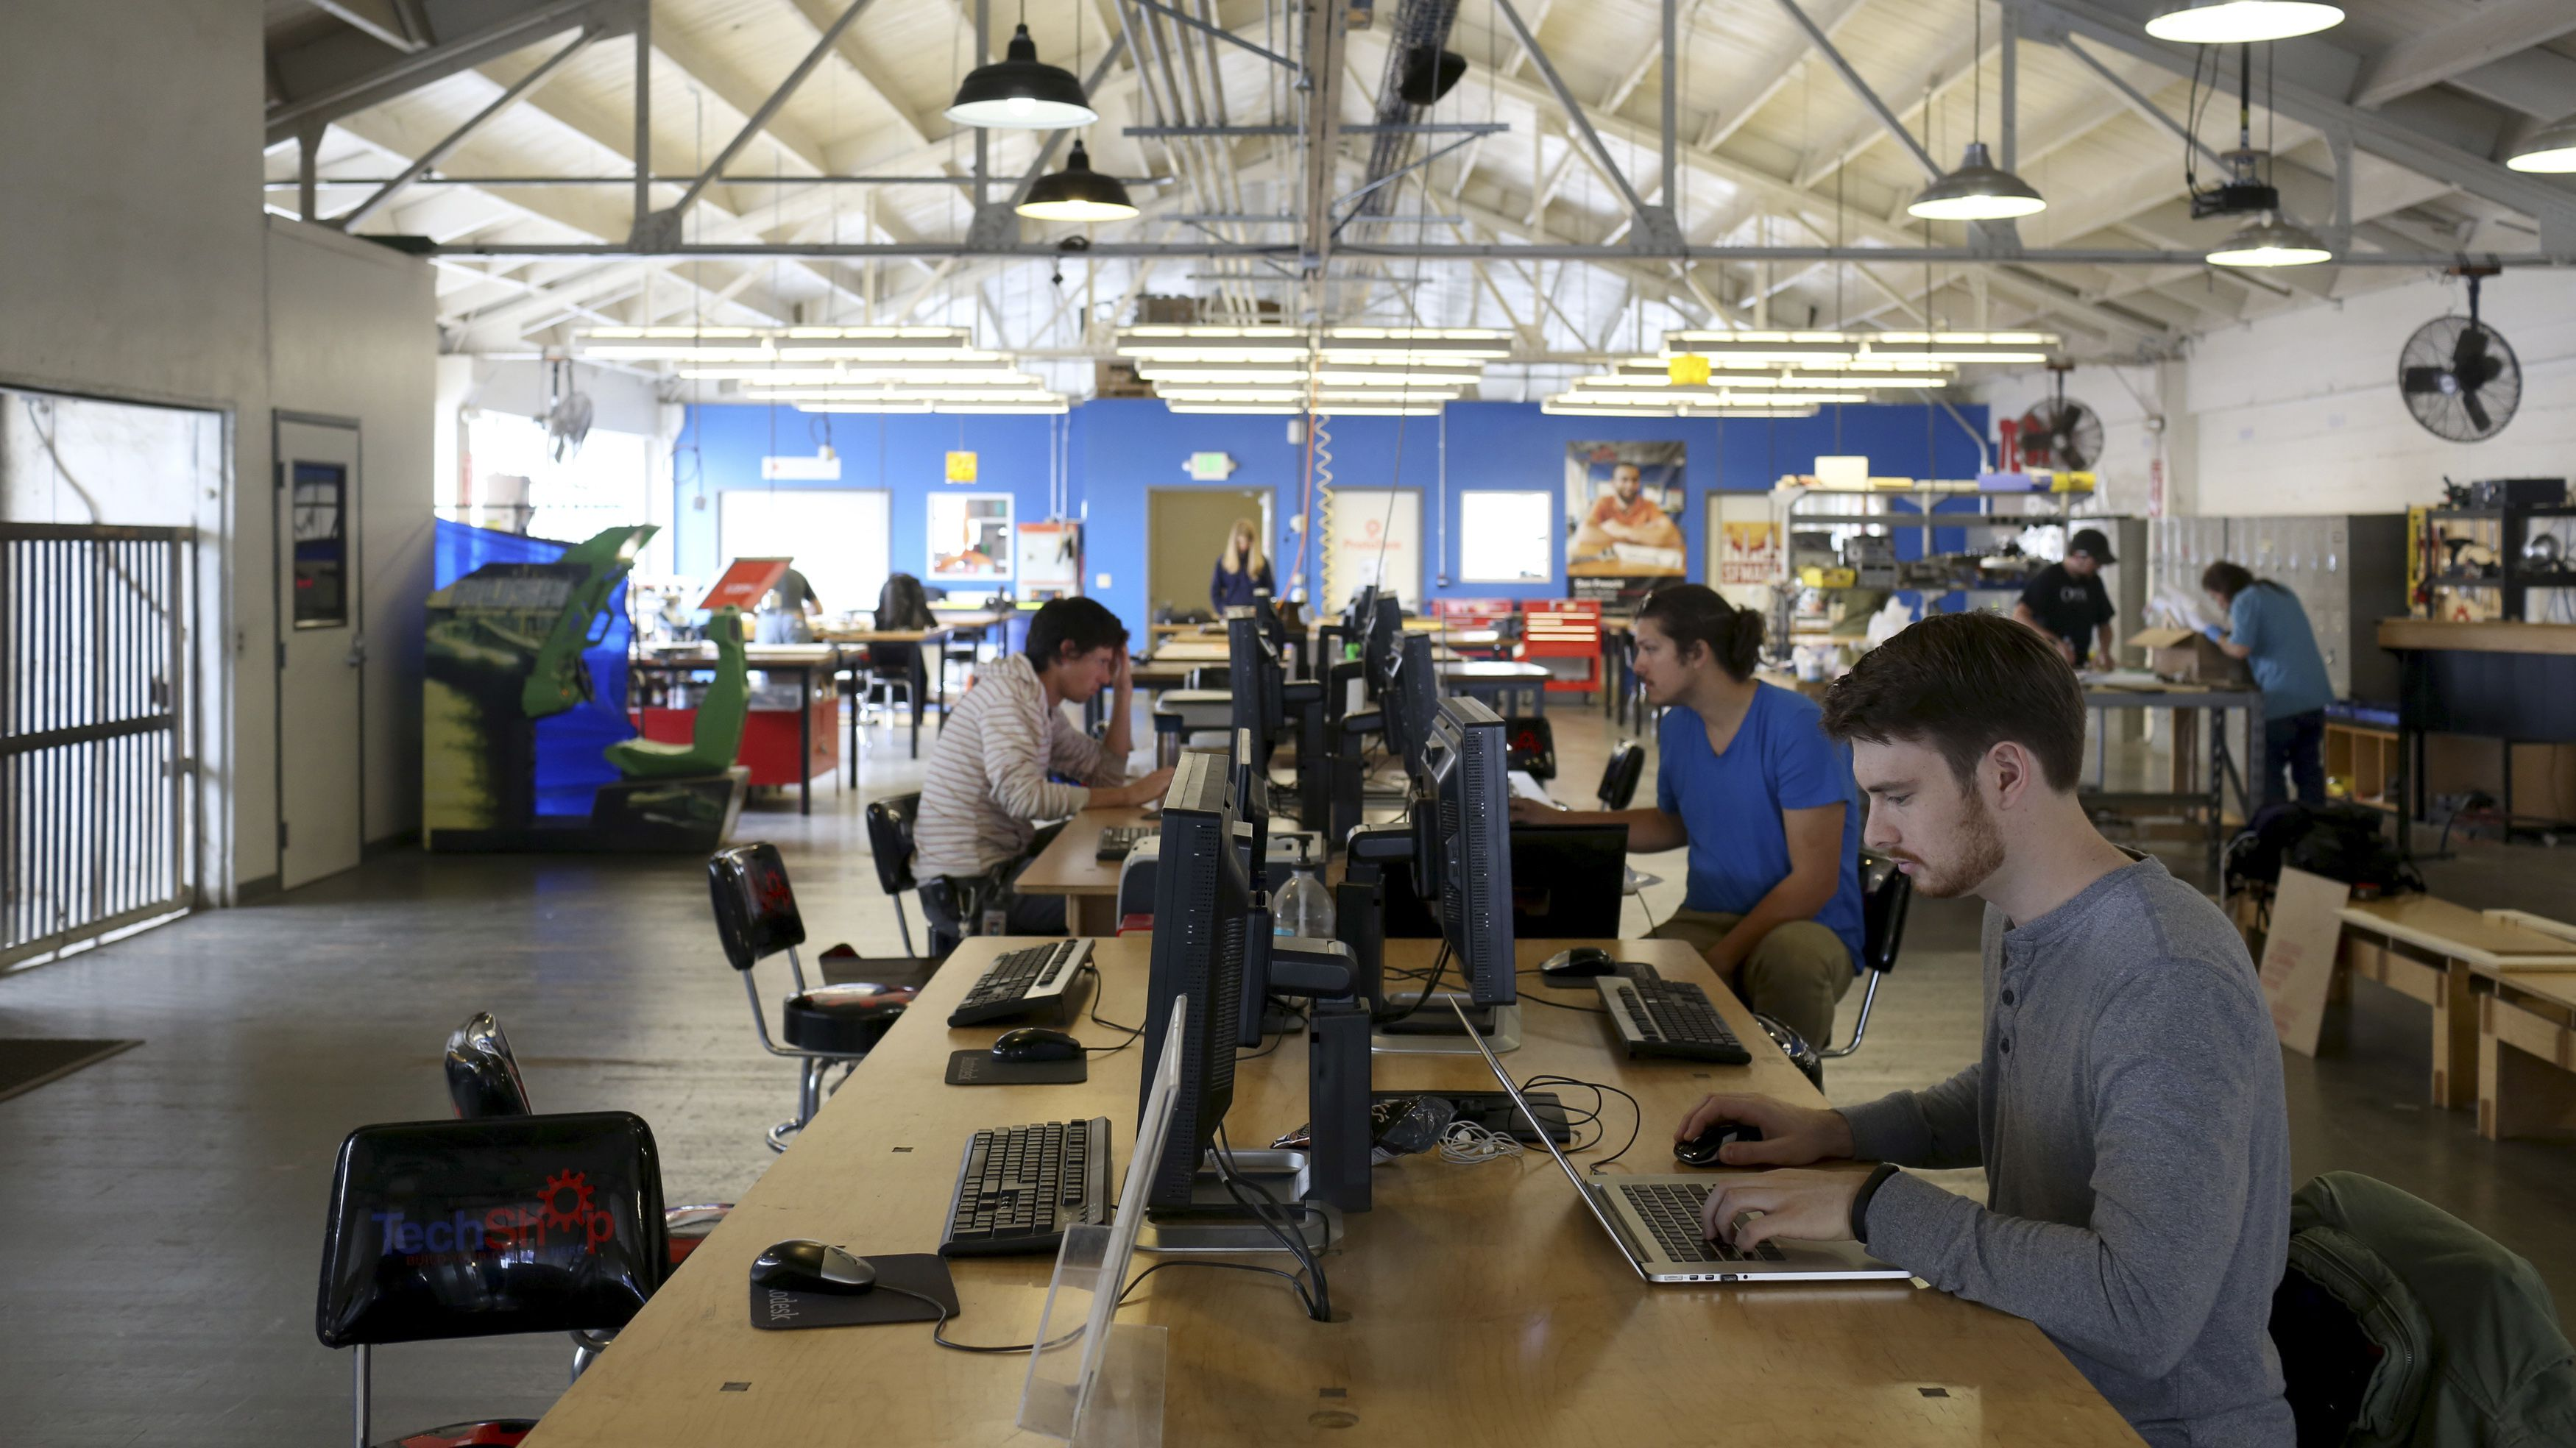 """Designers work at computer stations at TechShop in the South of Market neighborhood in San Francisco, California April 24, 2014. In the shadow of Internet monoliths, it's easy to forget that Silicon Valley got its start from hard-scrabble tinkerers building radios, microchips and other devices. Now, a proliferation of high-tech but affordable manufacturing tools and new sources of funding are empowering a generation of handy entrepreneurs and laying the foundation for a hardware renaissance. A growing focus on hardware and the so-called """"Maker movement"""" is sweeping northern California and, in a smaller way, Europe and other countries. Renewed interest in tinkering with objects - versus apps or software - is attracting more money from investors and fostering a growing number of workshops, where aspiring inventors can get their hands on computerized milling machines and other high-end tools. Picture taken April 24, 2014.   REUTERS/Robert Galbraith  (UNITED STATES - Tags: BUSINESS SCIENCE TECHNOLOGY) - RTR3NZ5R"""